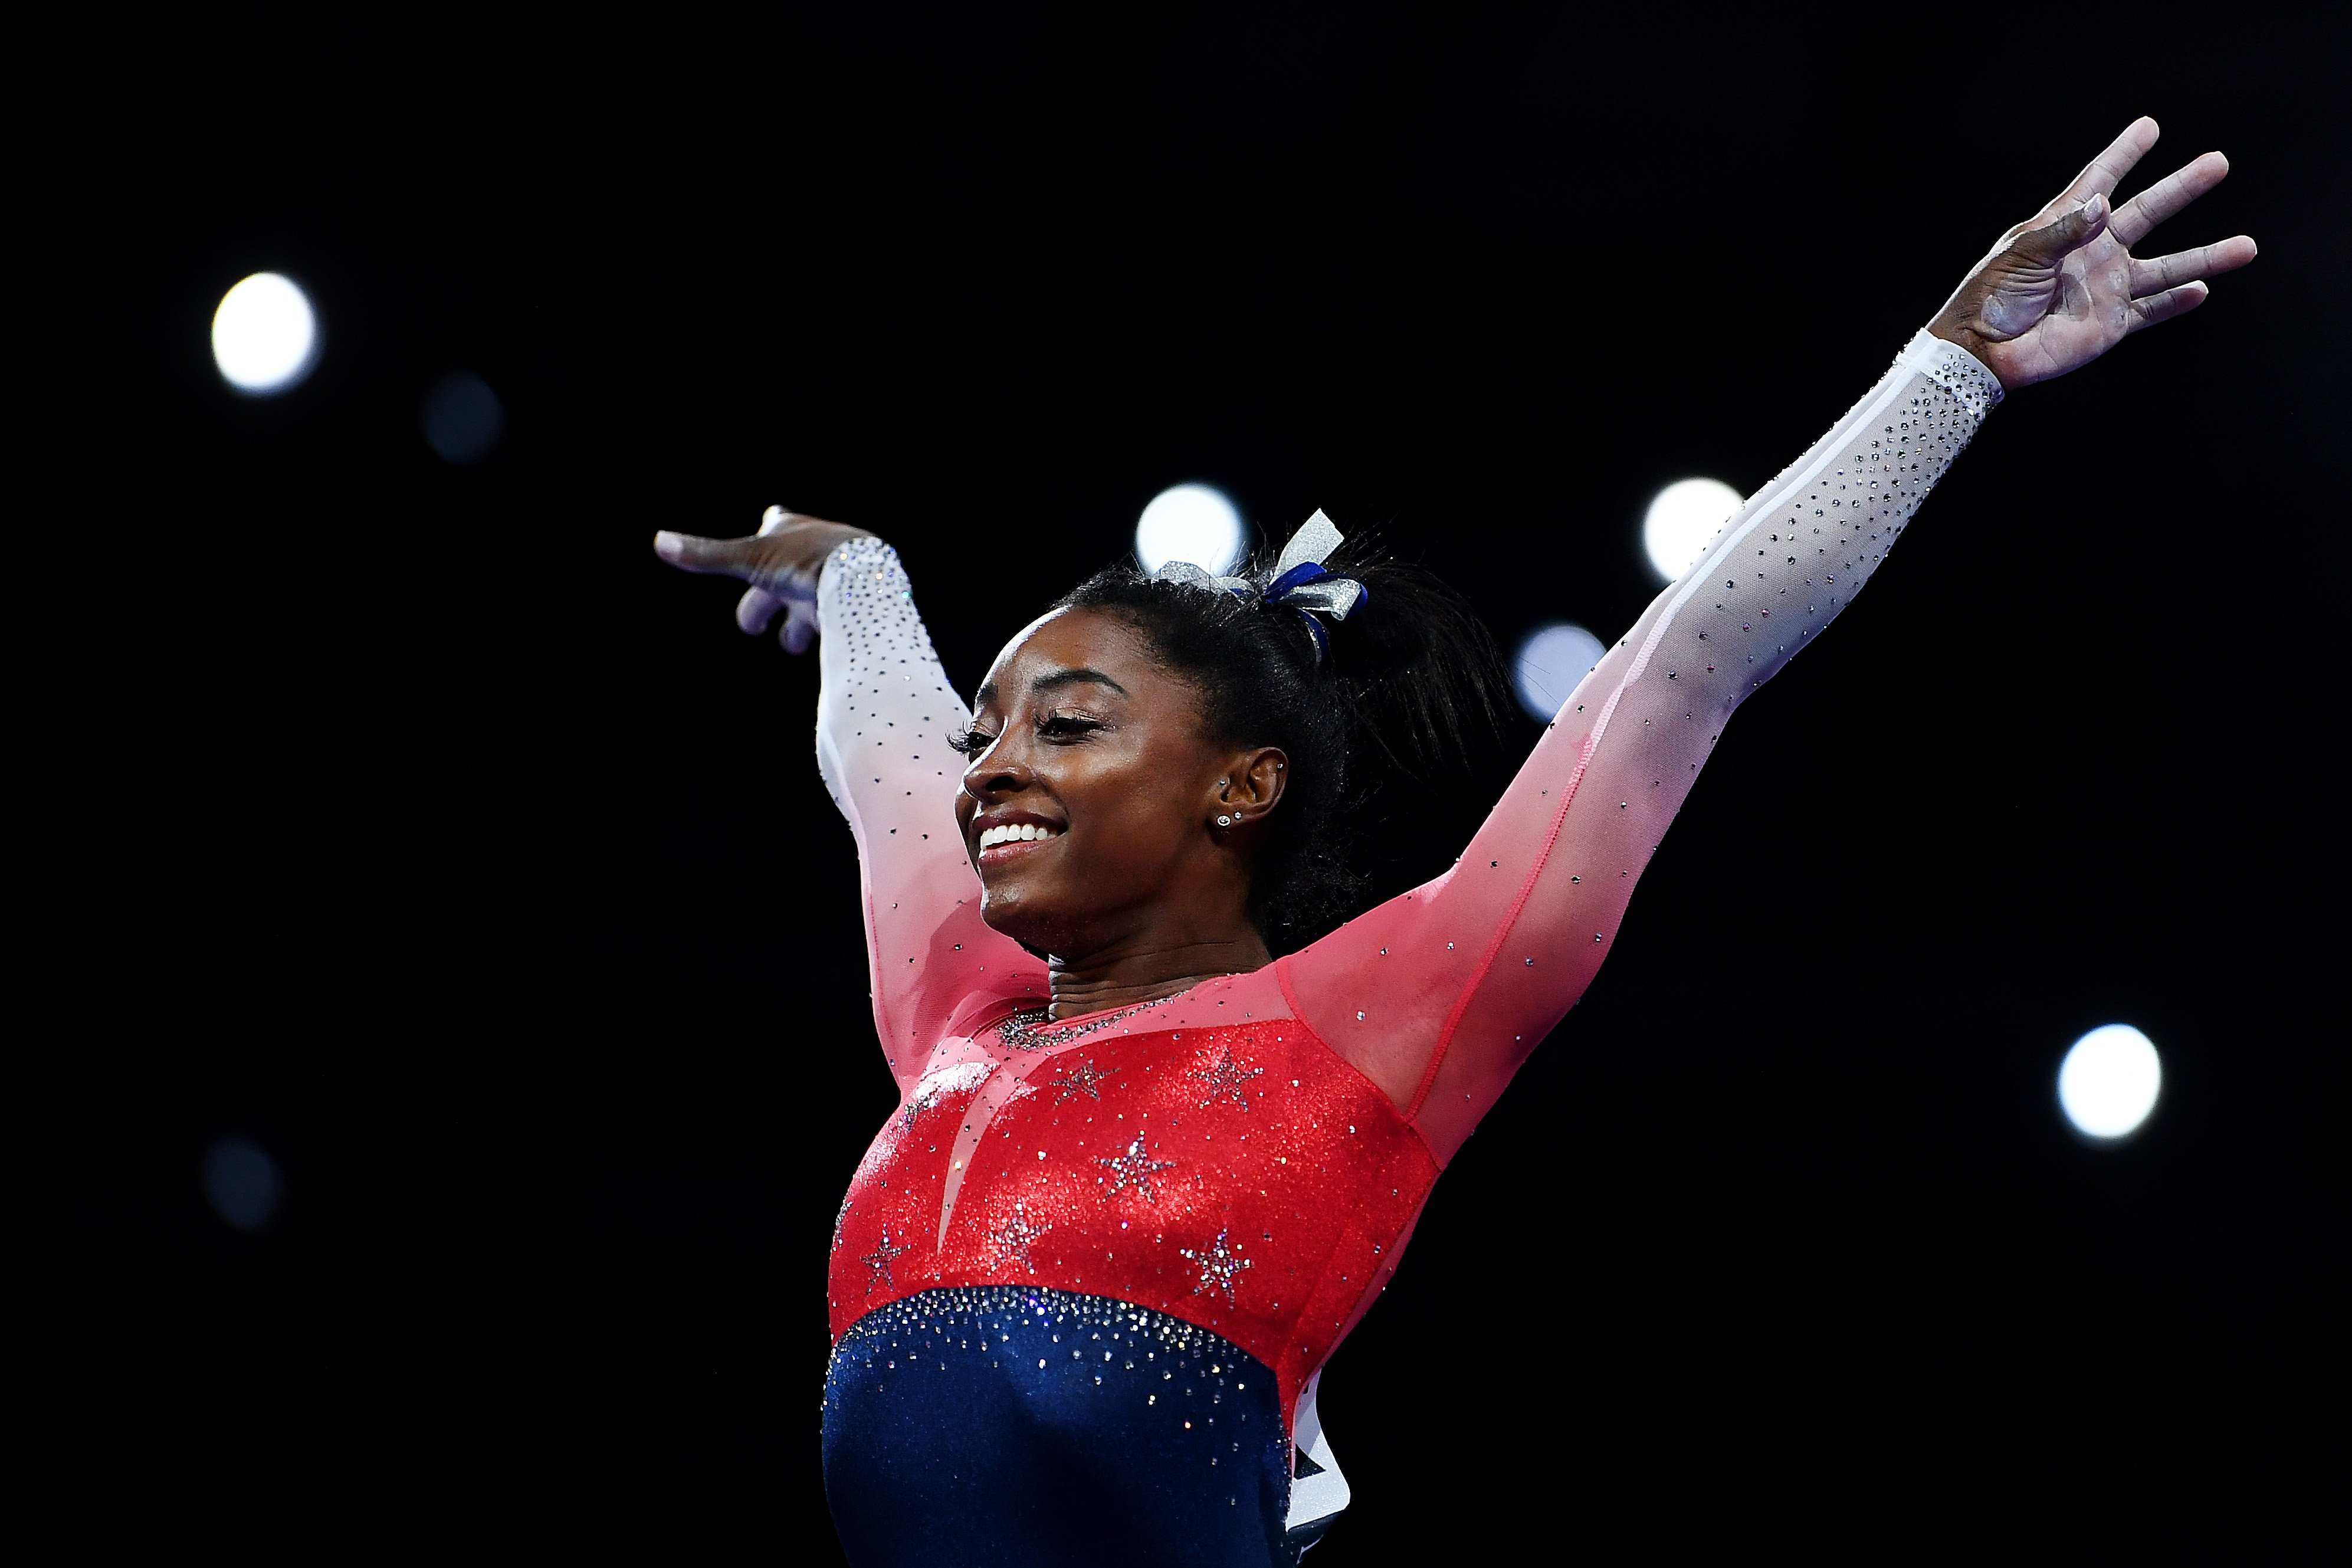 Simone Biles af the FIG Artistic Gymnastics World Championships on October 08, 2019 in Stuttgart, Germany   Photo: Getty Images